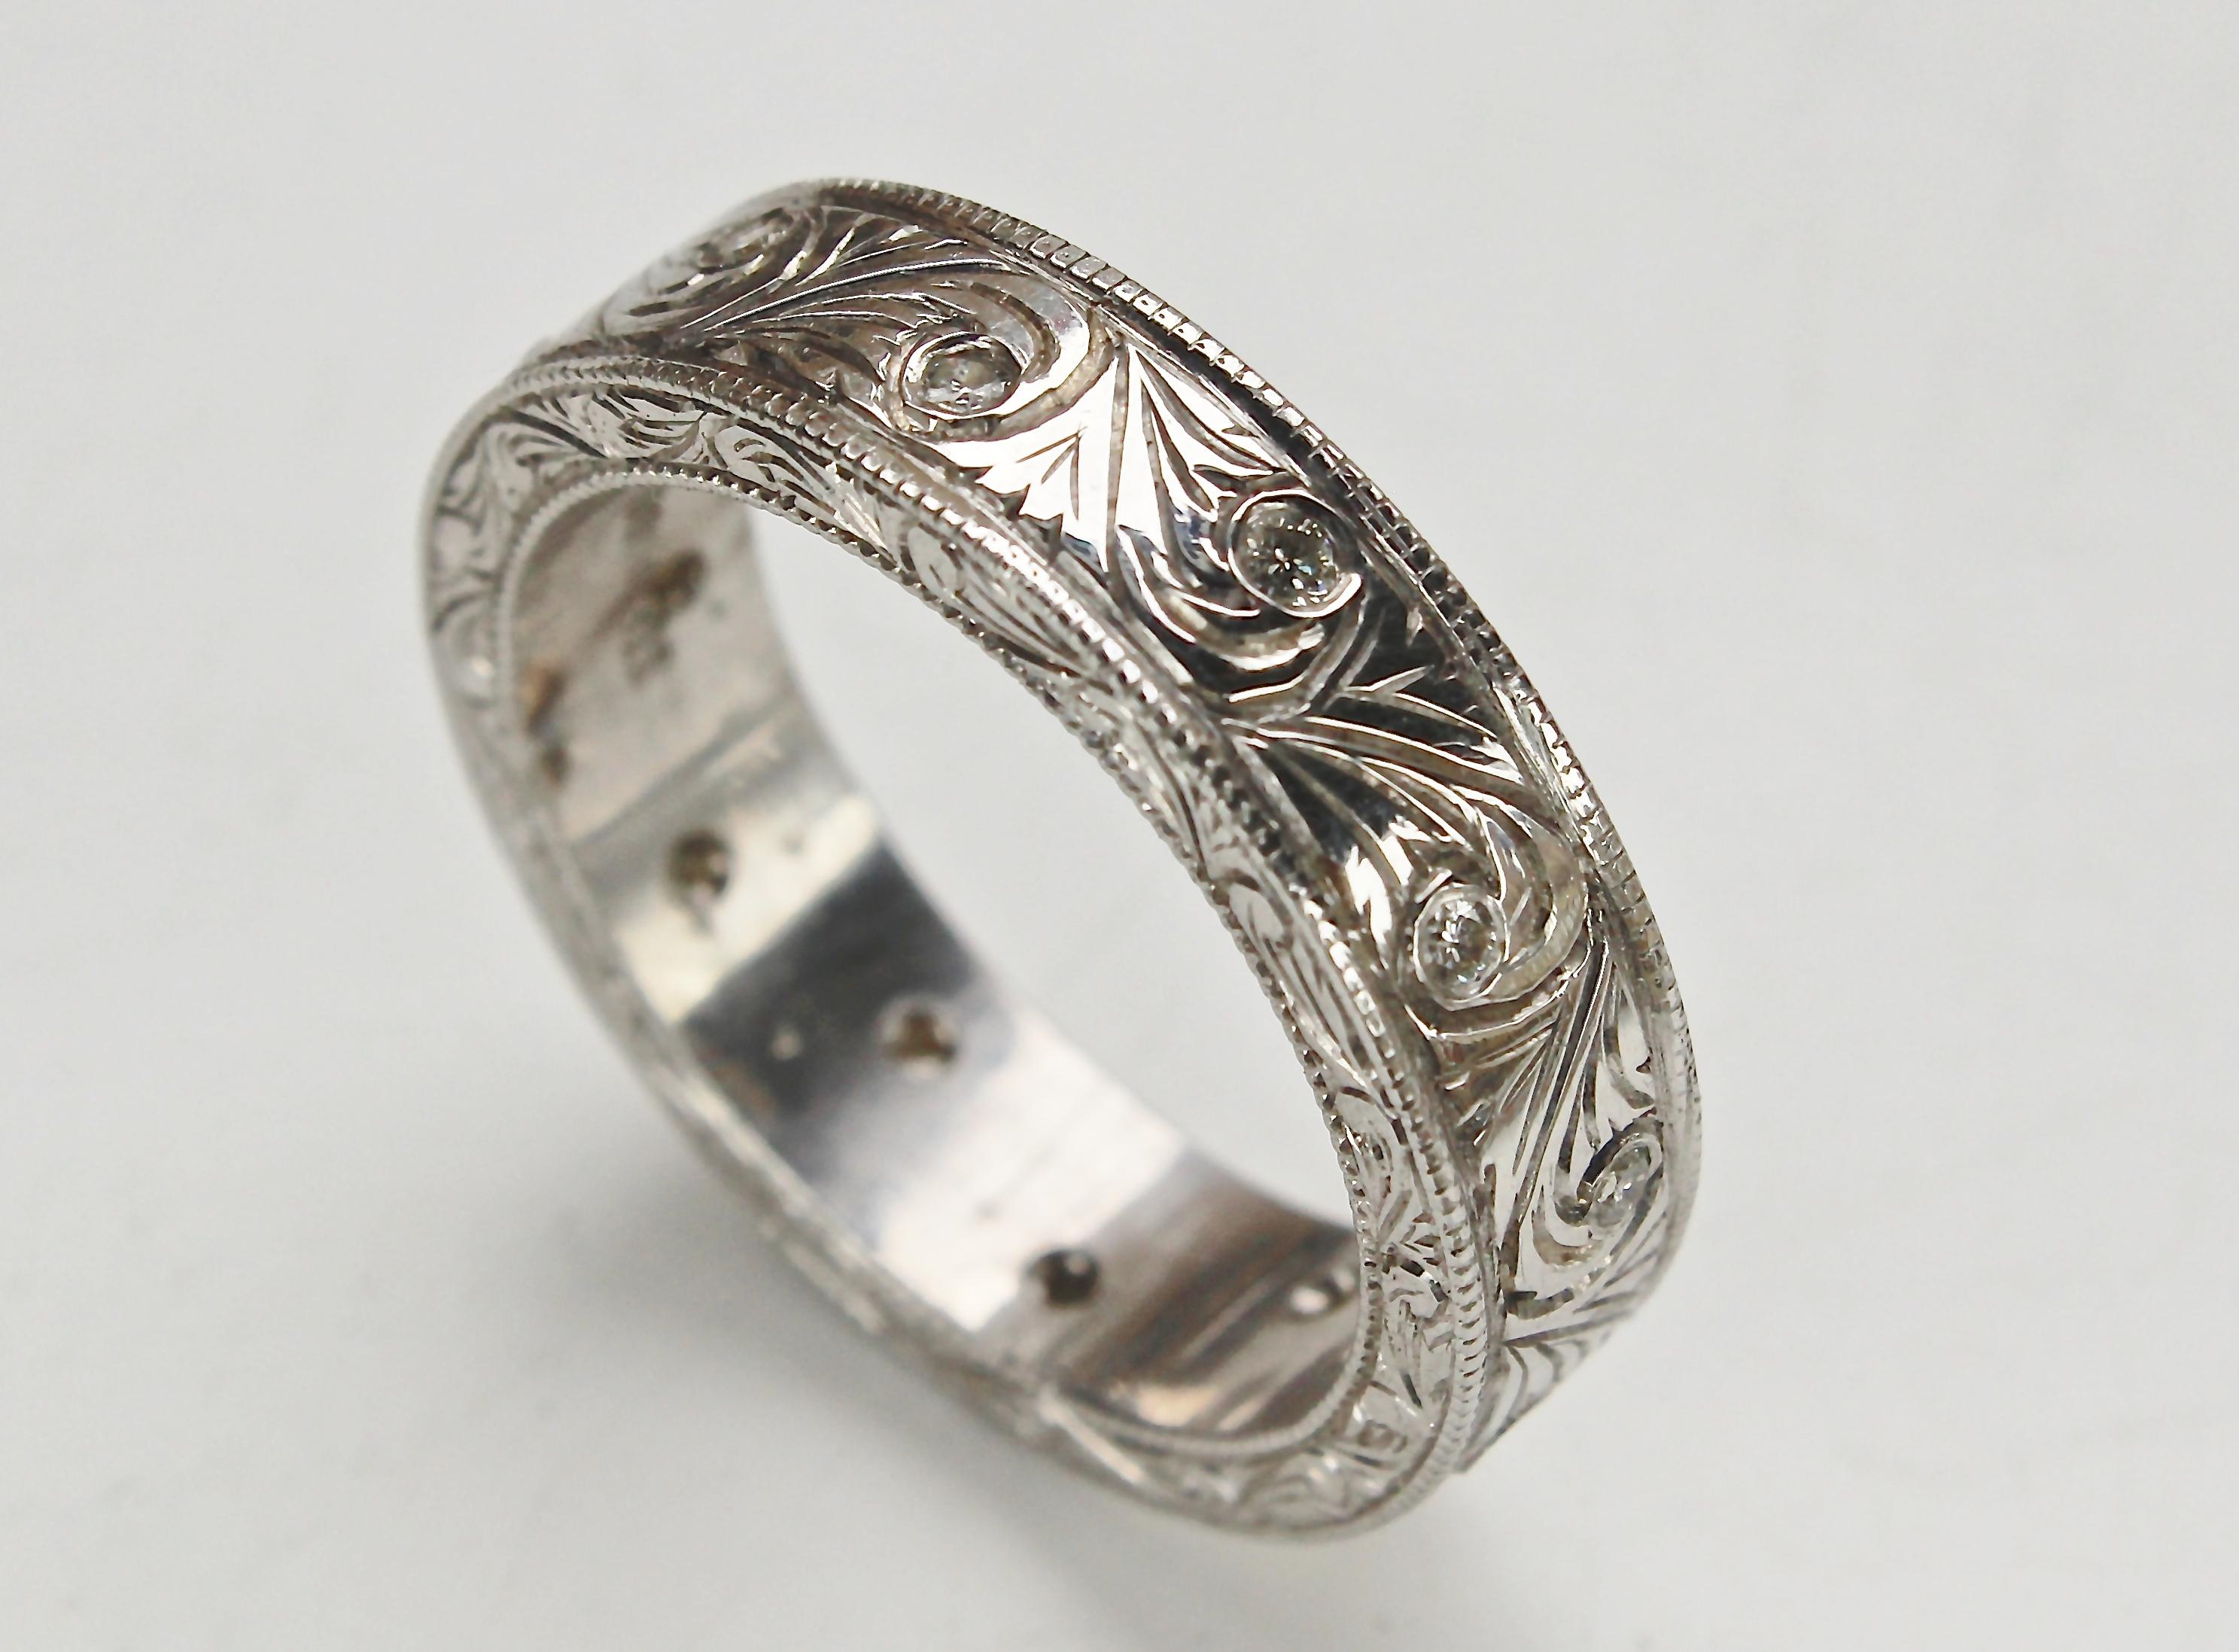 rose milgrain ring scroll wedding carved leaf il art nouveau engraving hand fullxfull dzdr band rings engraved diamond leafs carving gold